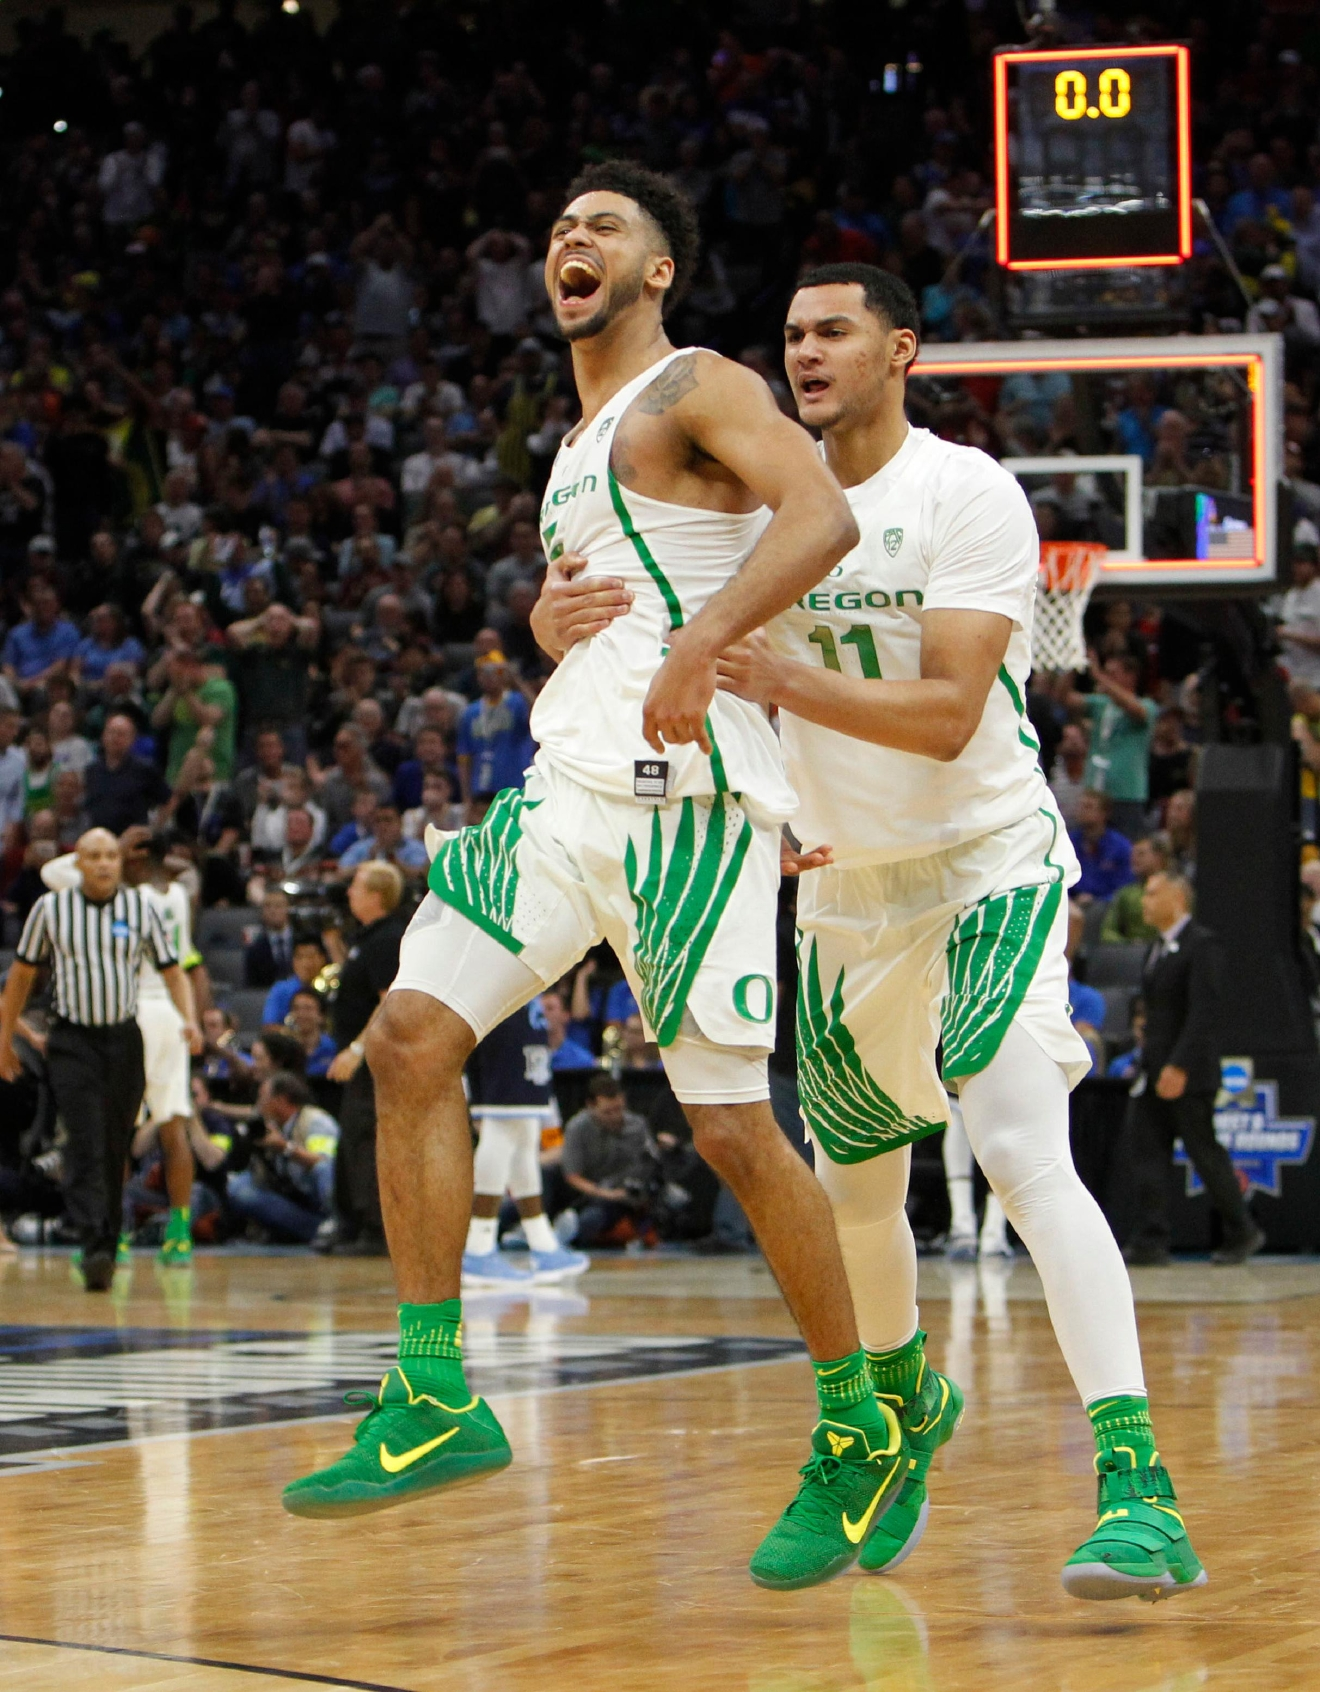 Oregon guard Tyler Dorsey (5) celebrates with teammate Keith Smith (11) after their win over Rhode Island during a second-round game in the NCAA college basketball tournament in Sacramento, Calif., Sunday, March 19, 2017. Oregon won 75-72. (AP Photo/Steve Yeater)